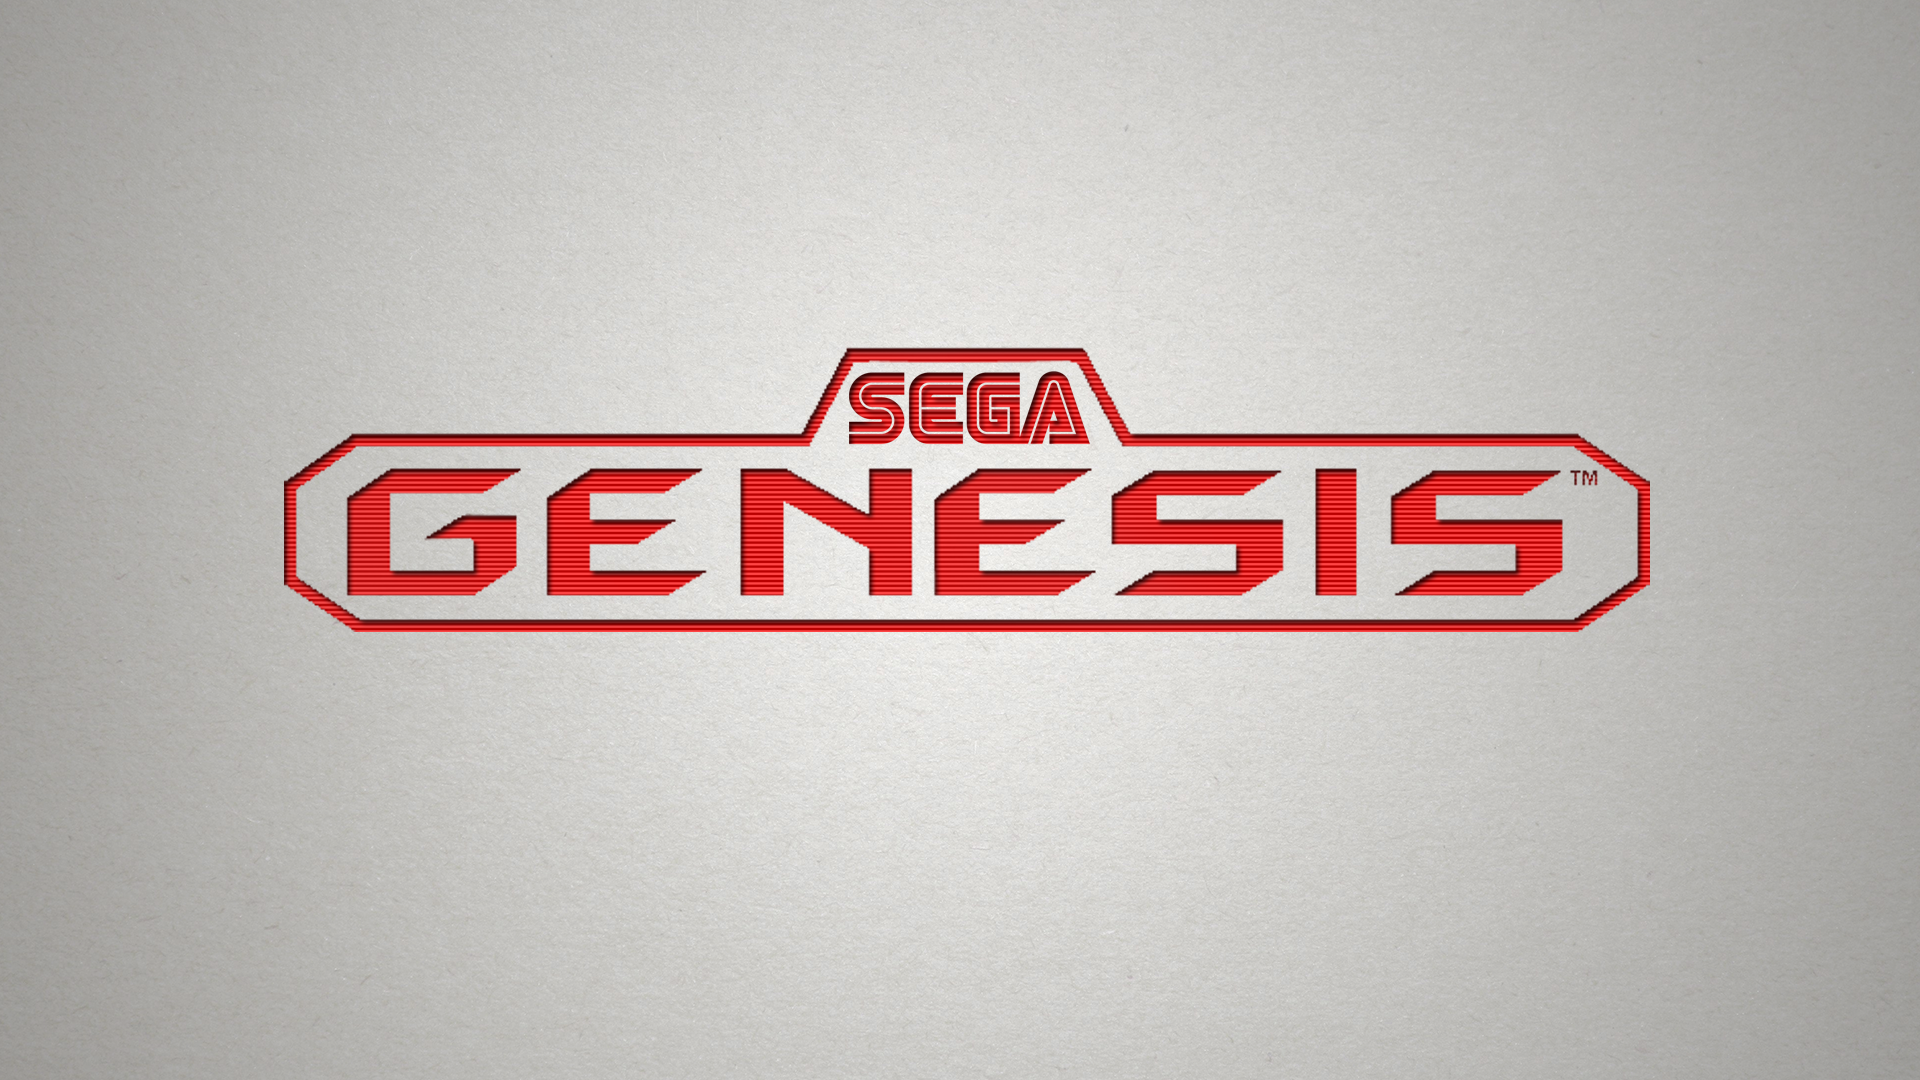 Genesis HD Quality Wallpaper Download, Tam Boykins